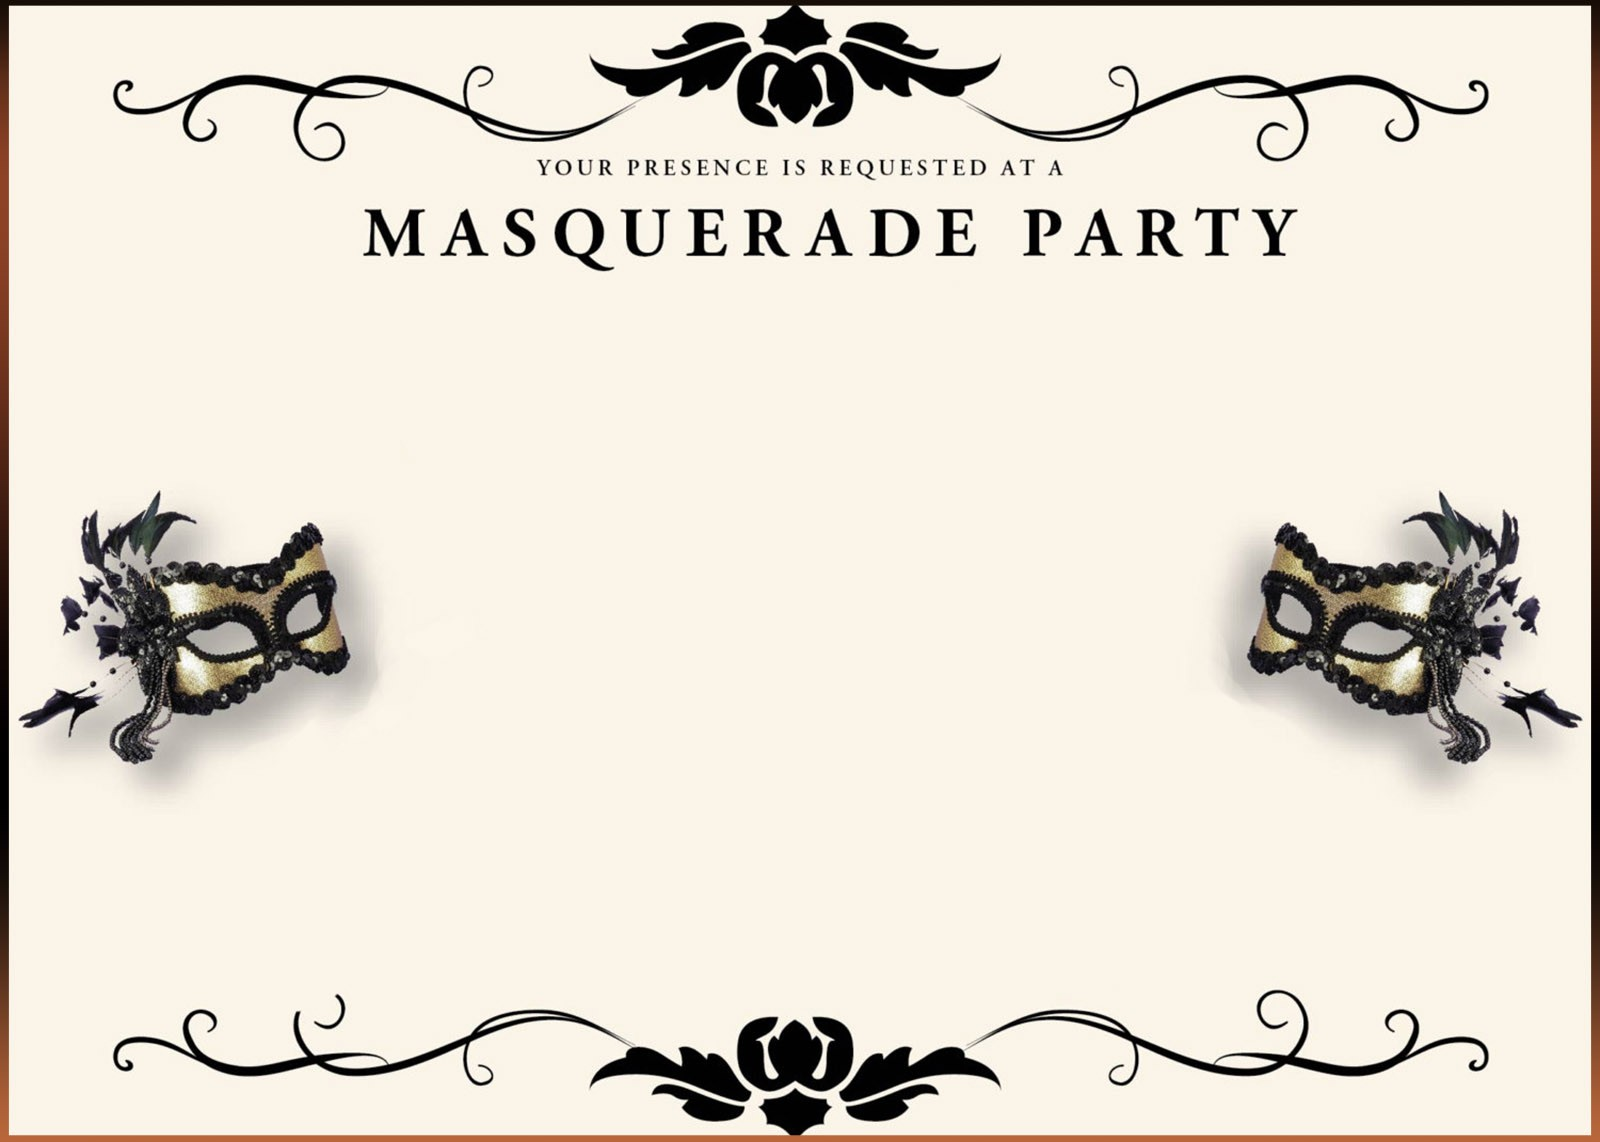 Invitation clipart masquerade. Invitations template free agtion